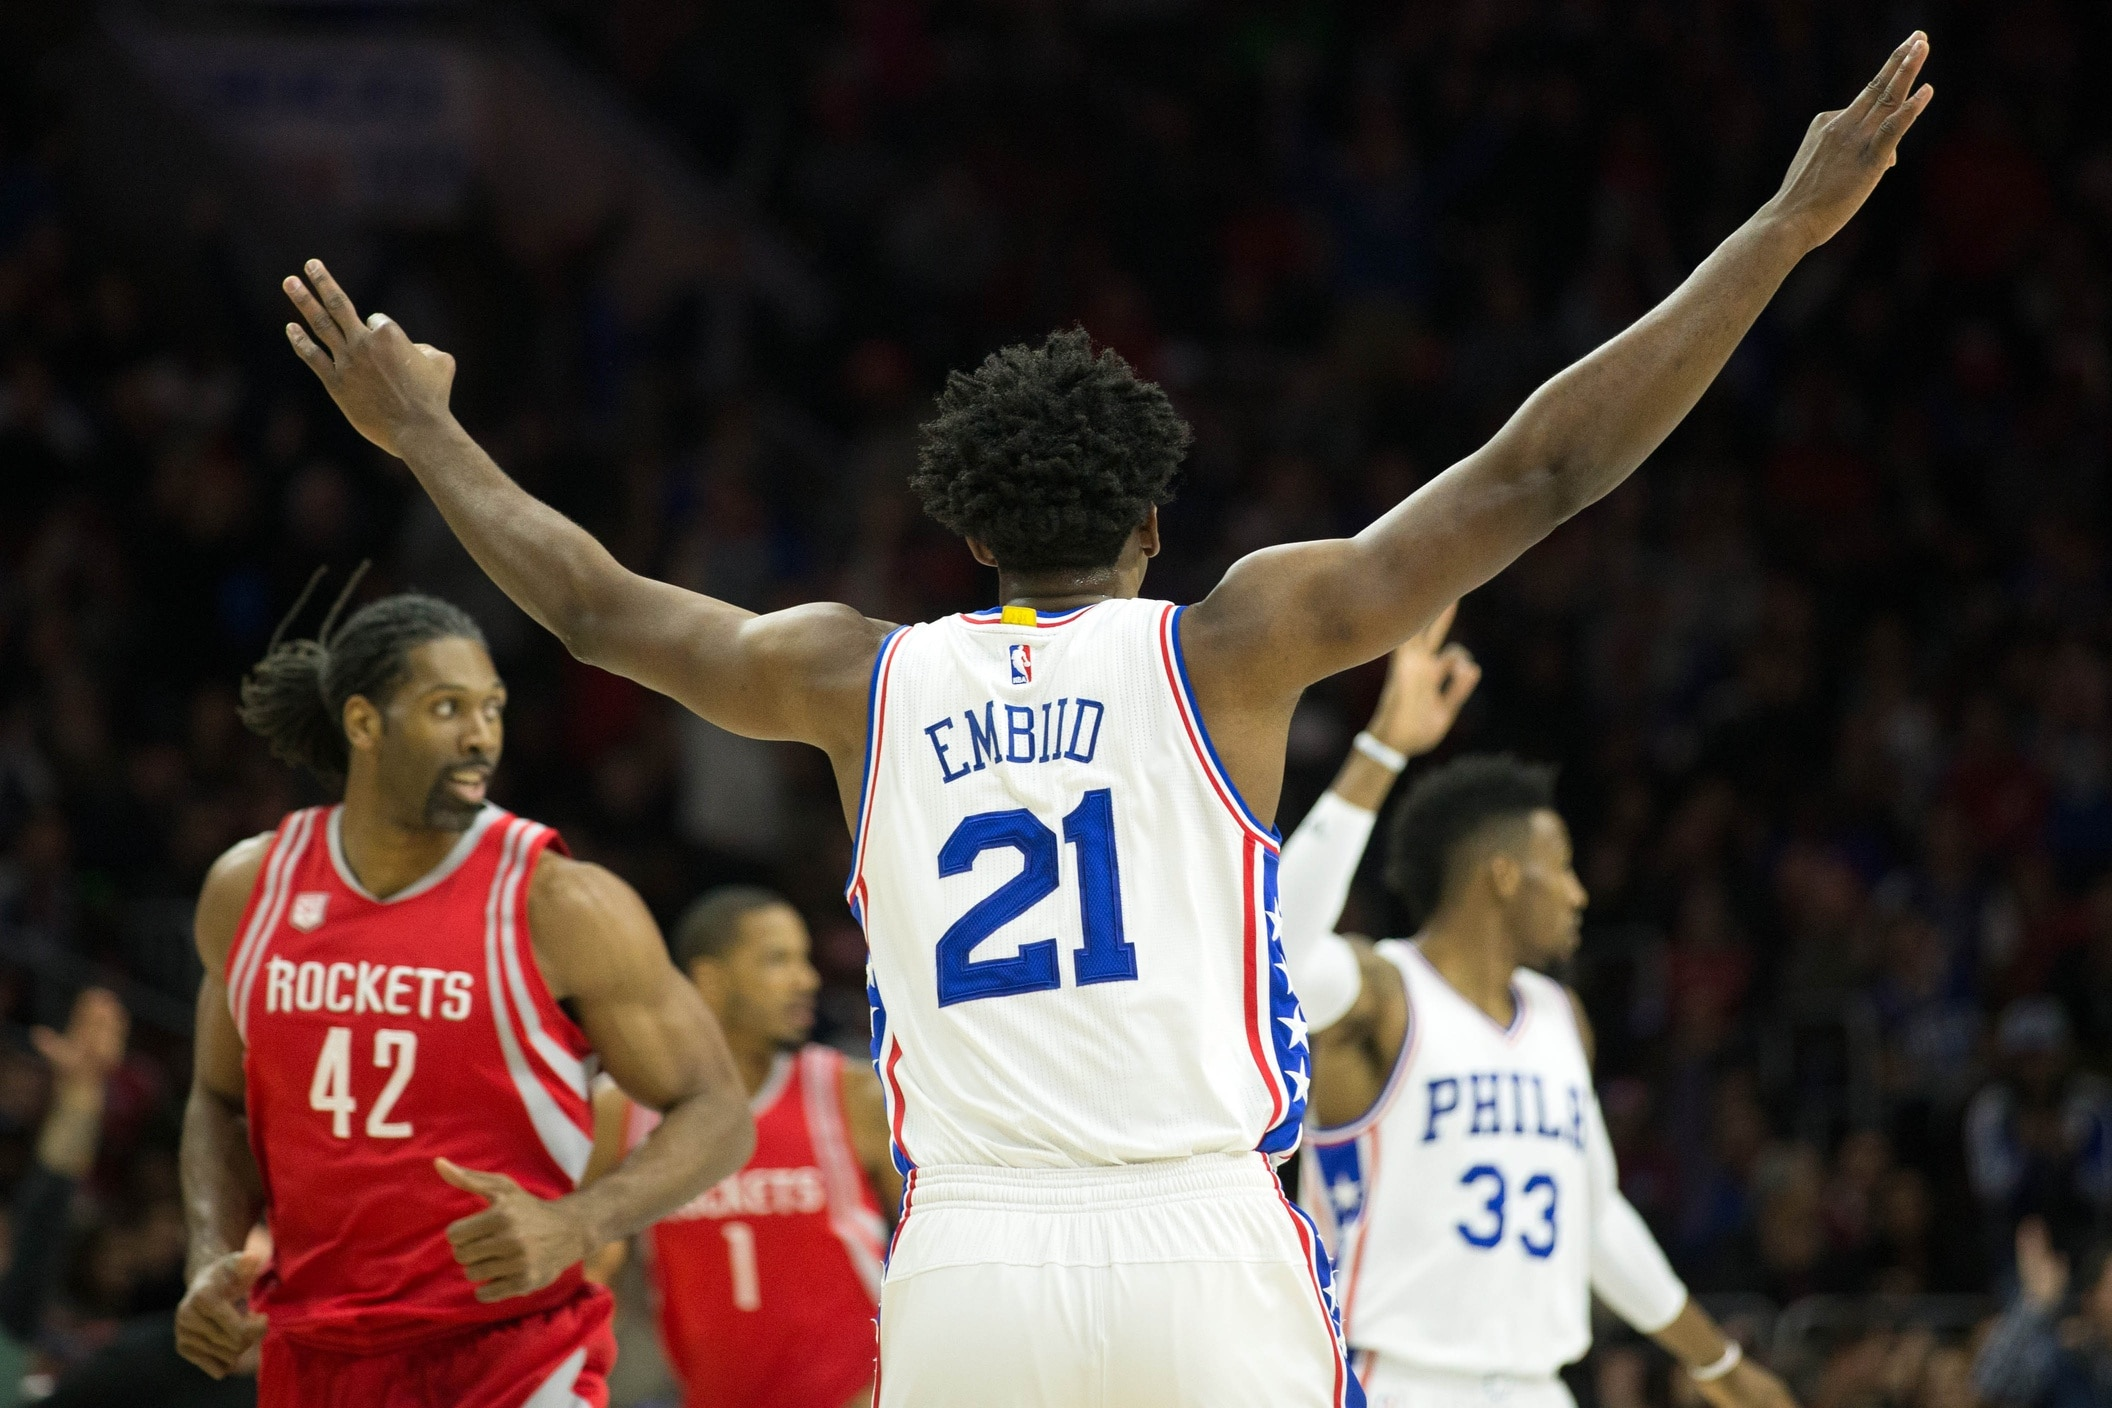 Jan 27, 2017; Philadelphia, PA, USA; Philadelphia 76ers center Joel Embiid (21) reacts to his three pointer in front of Houston Rockets center Nene Hilario (42) during the first quarter at Wells Fargo Center. Mandatory Credit: Bill Streicher-USA TODAY Sports